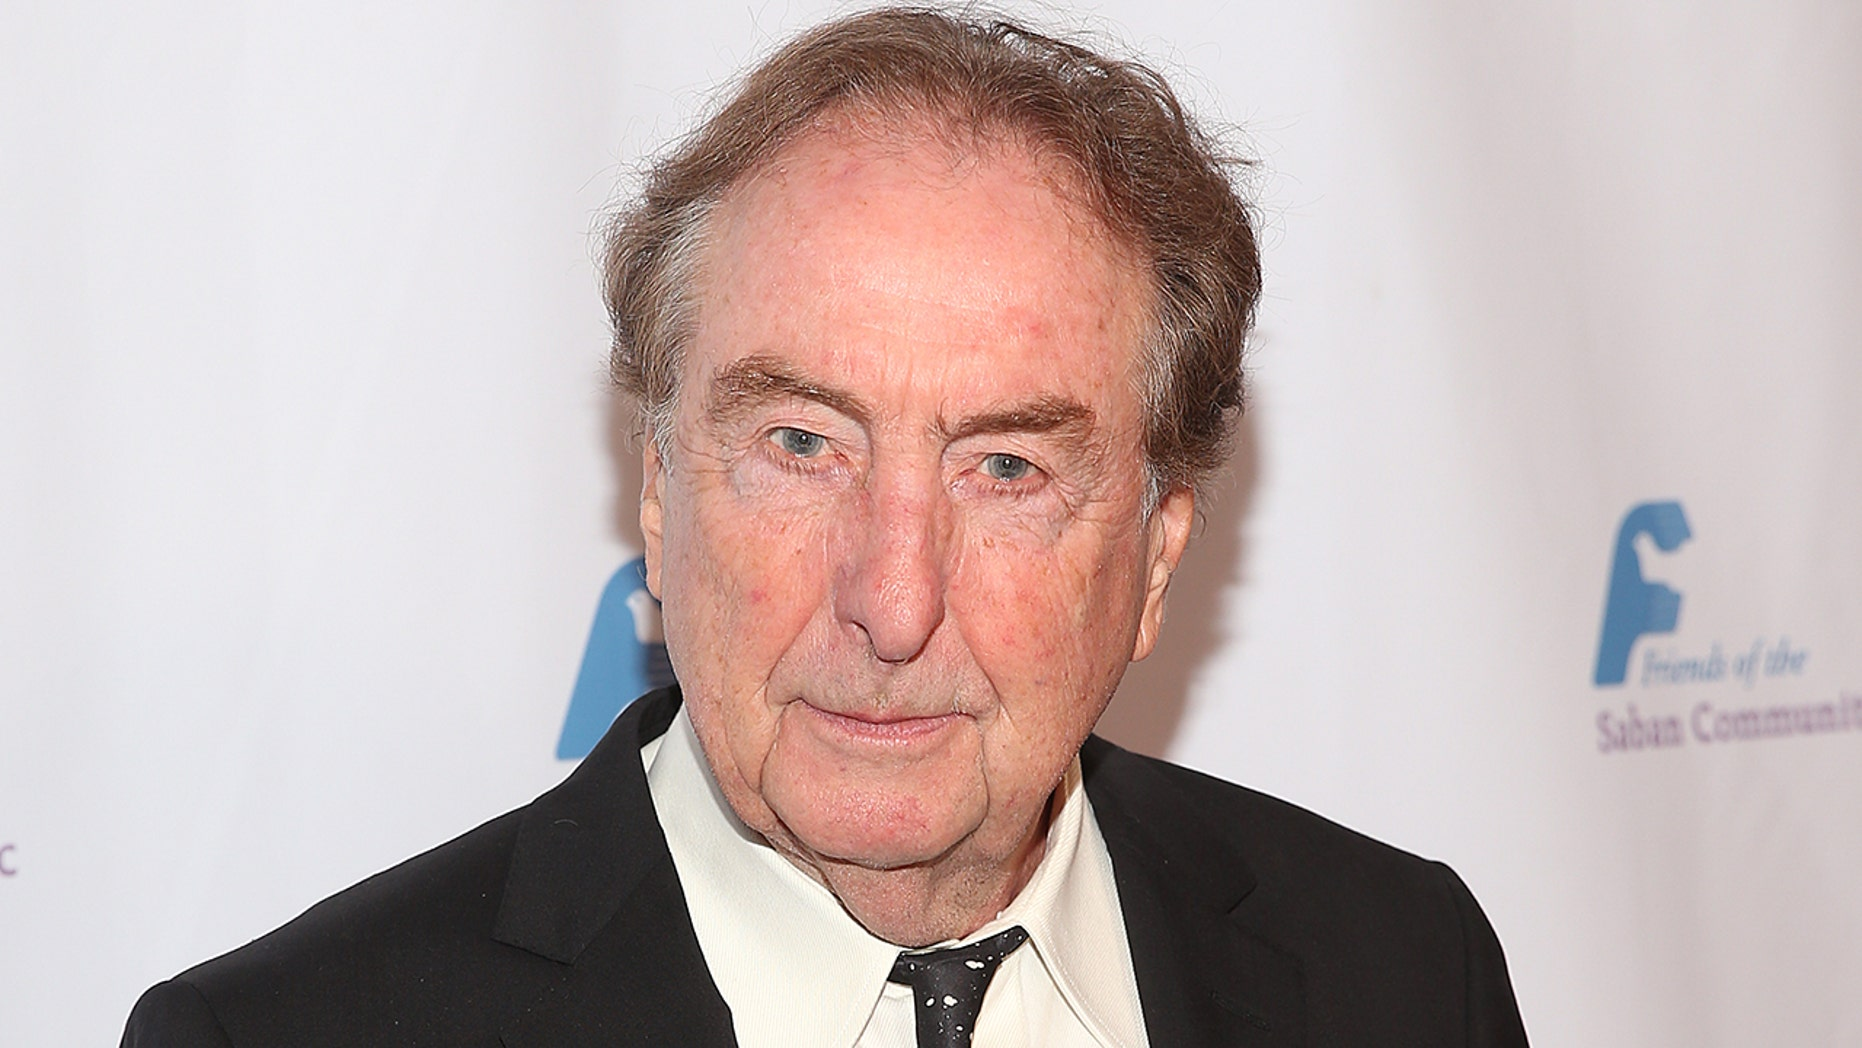 Monty Python Star Eric Idle's Home Reportedly Evacuated After Anthrax Scare